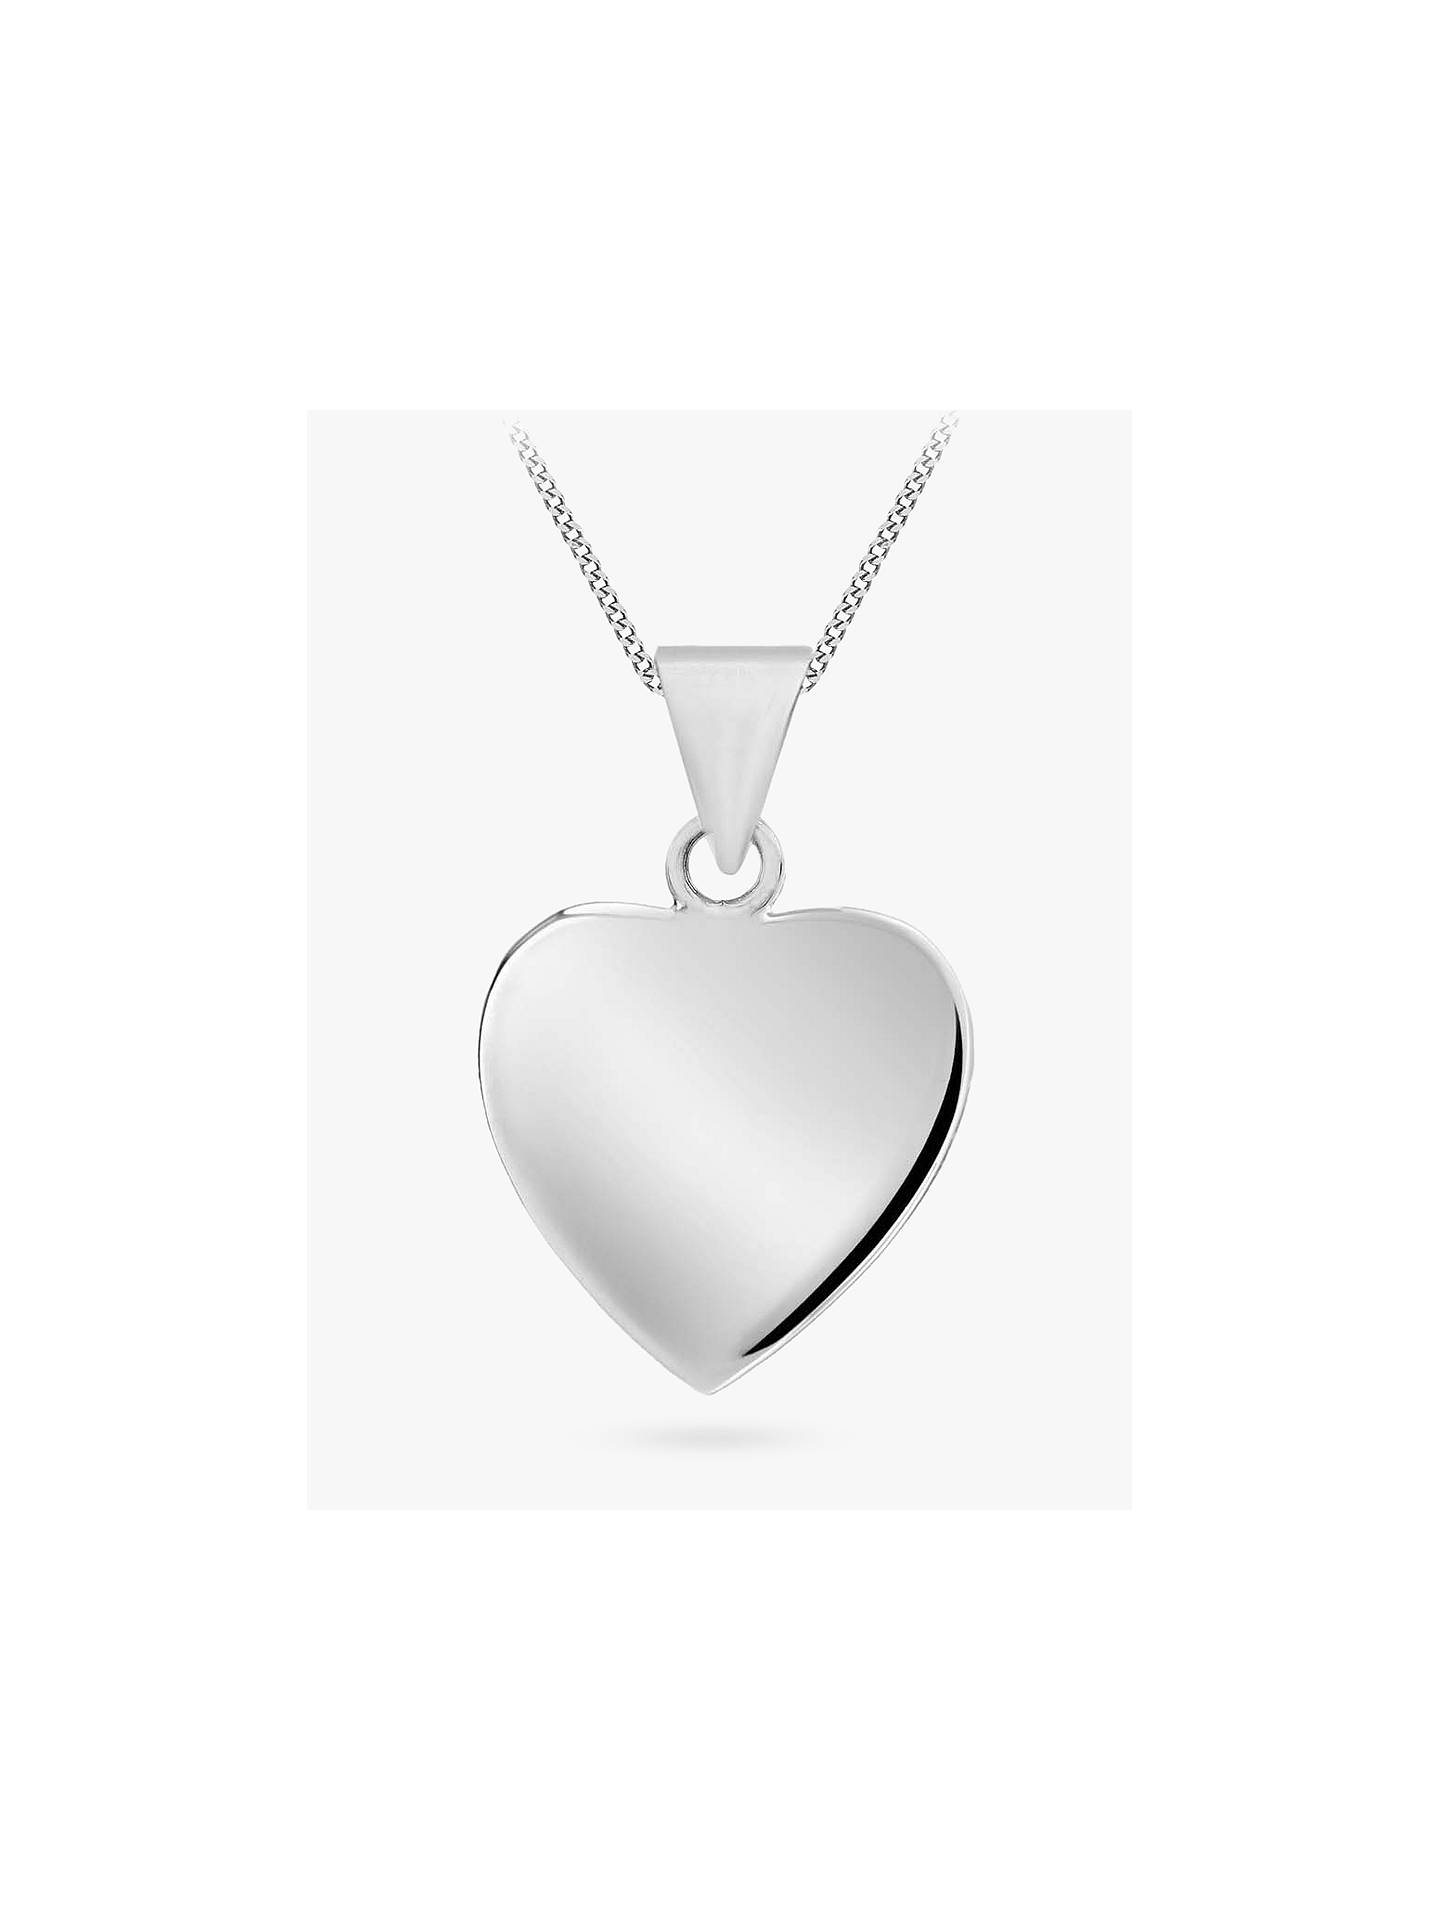 Ibb Personalised Sterling Silver Heart Necklace, Silver by Ibb